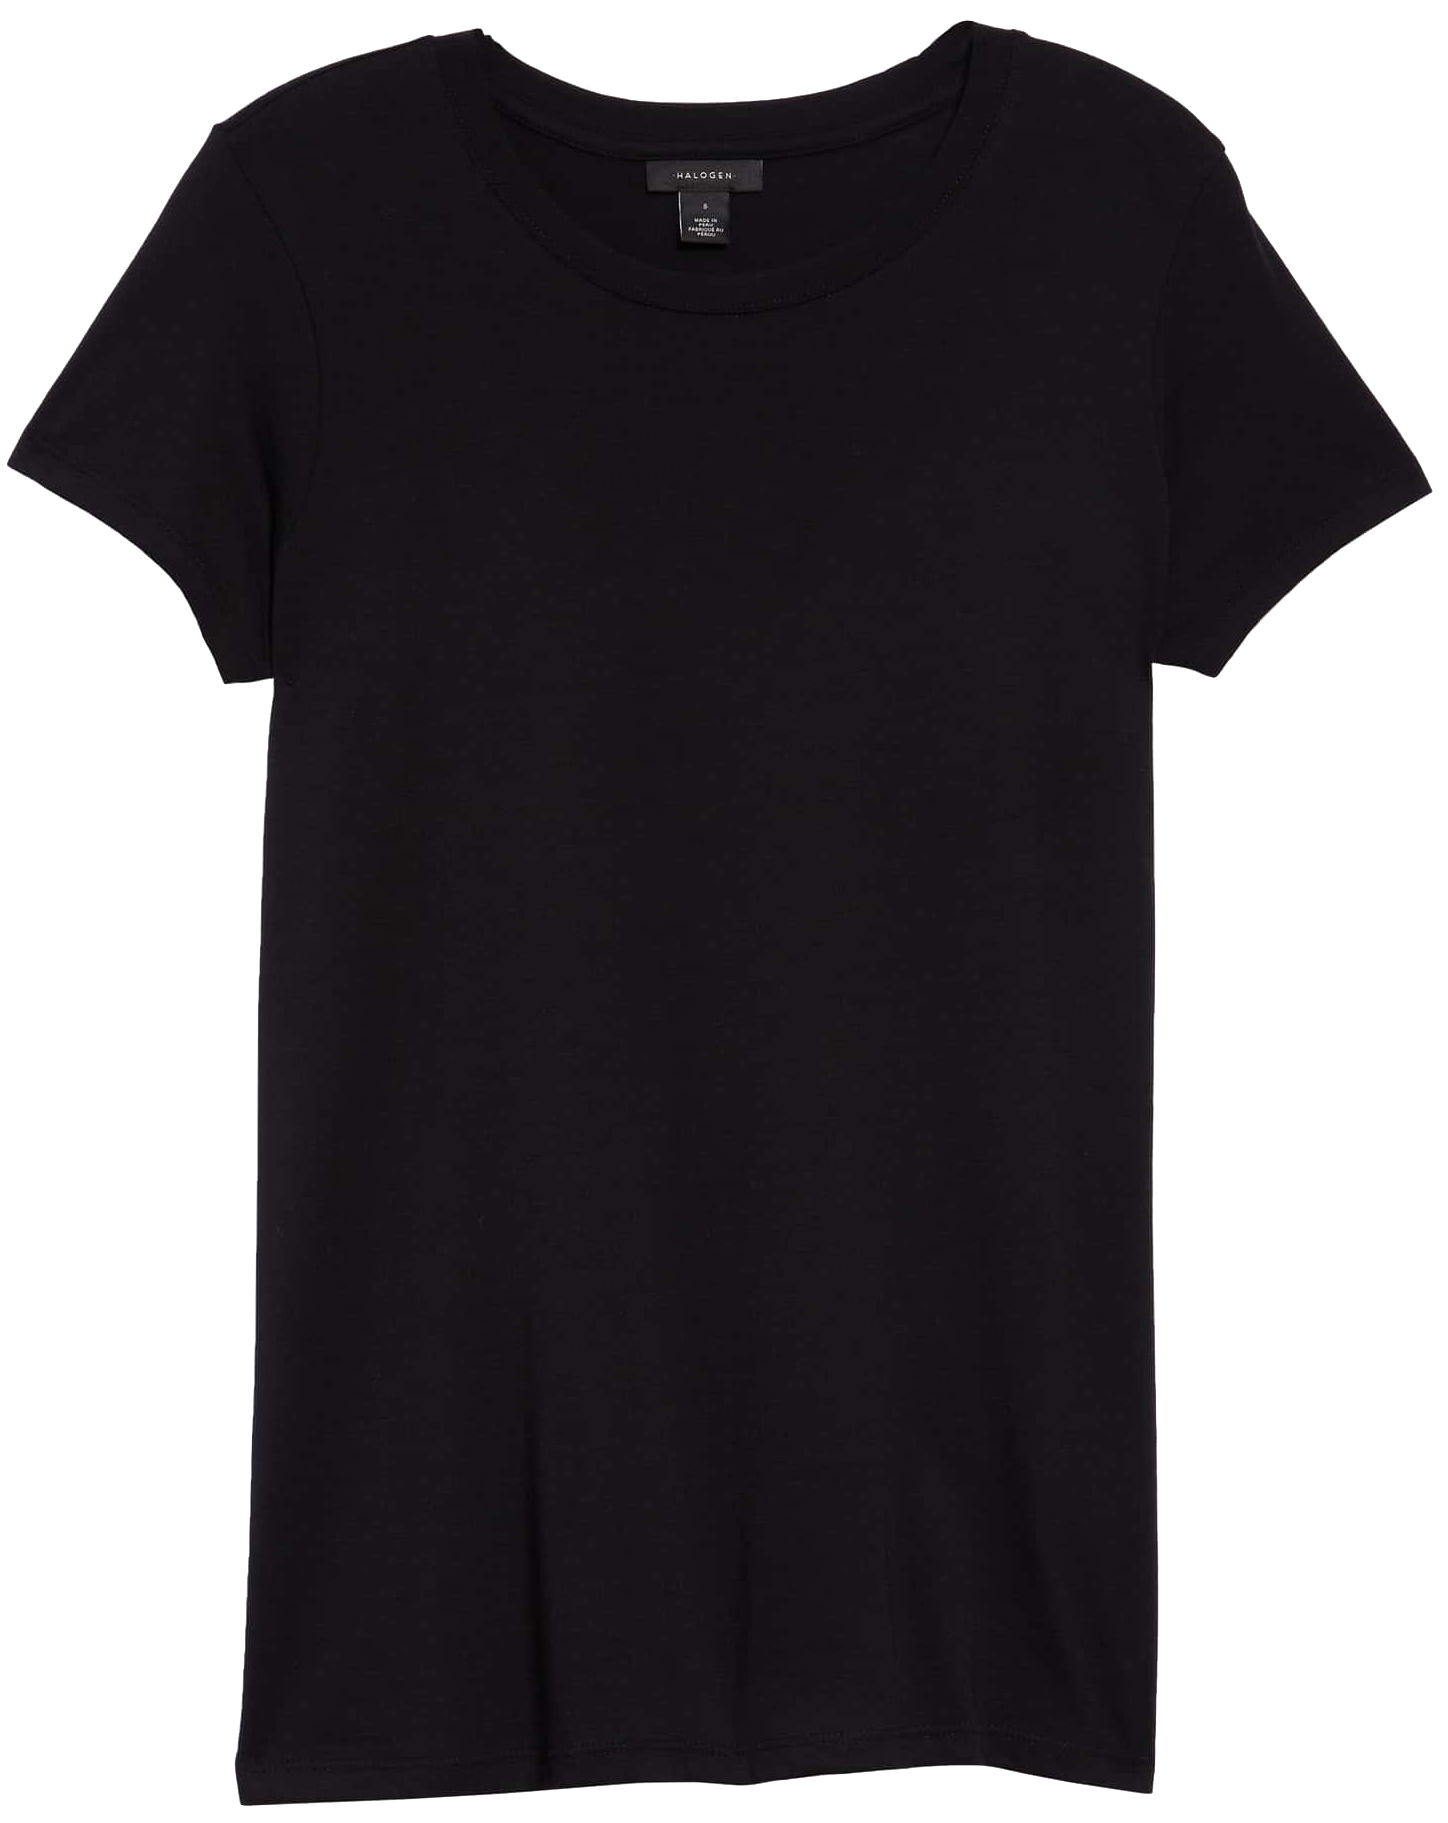 TOP - BLACK SS TEE